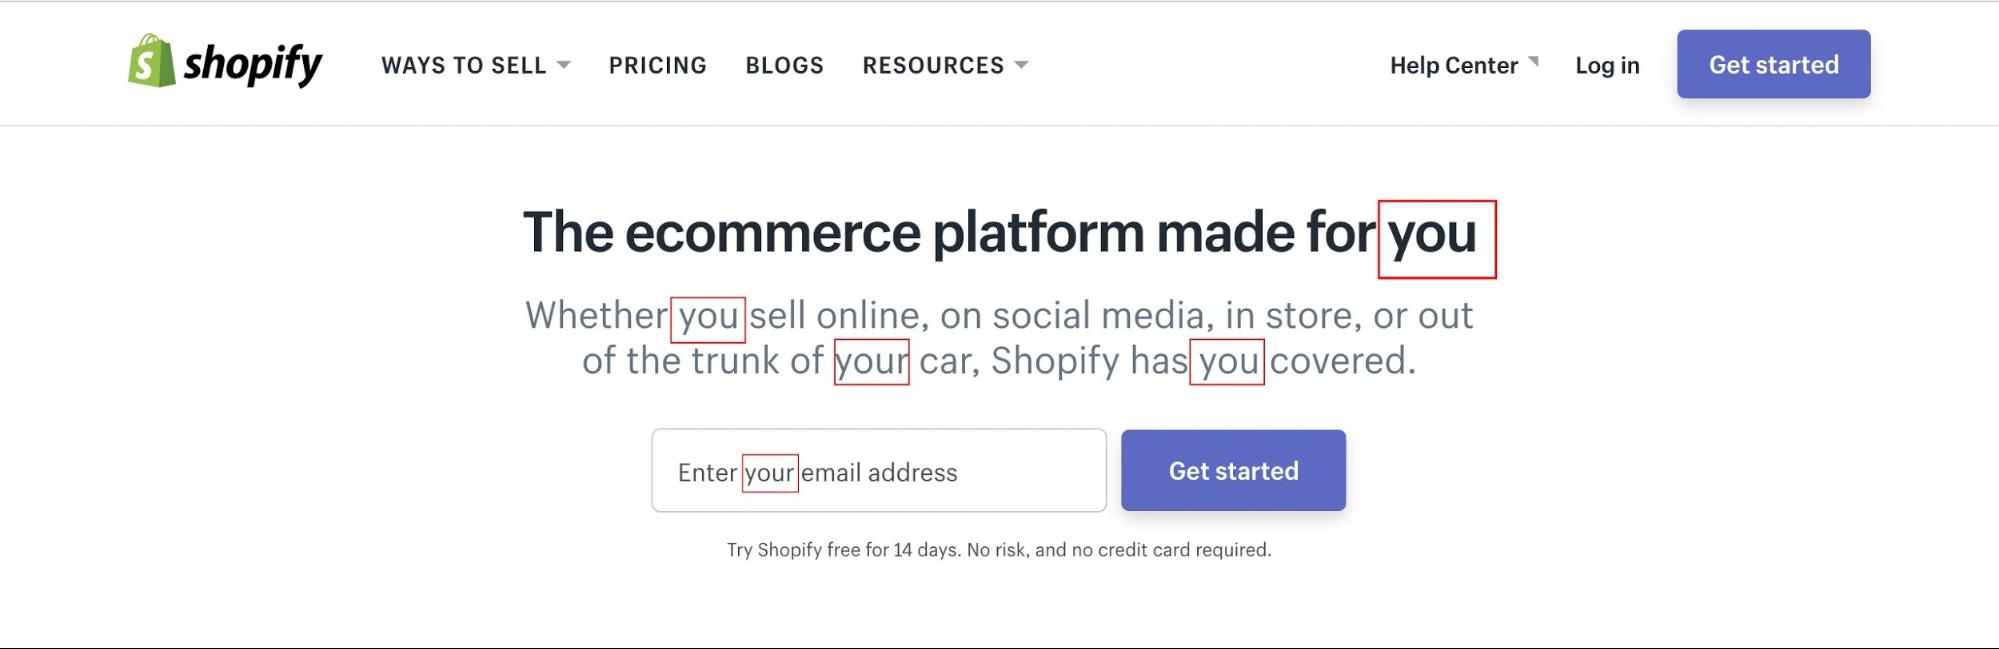 "Screenshot showing how shopify uses the word ""you"" a lot in their copy"